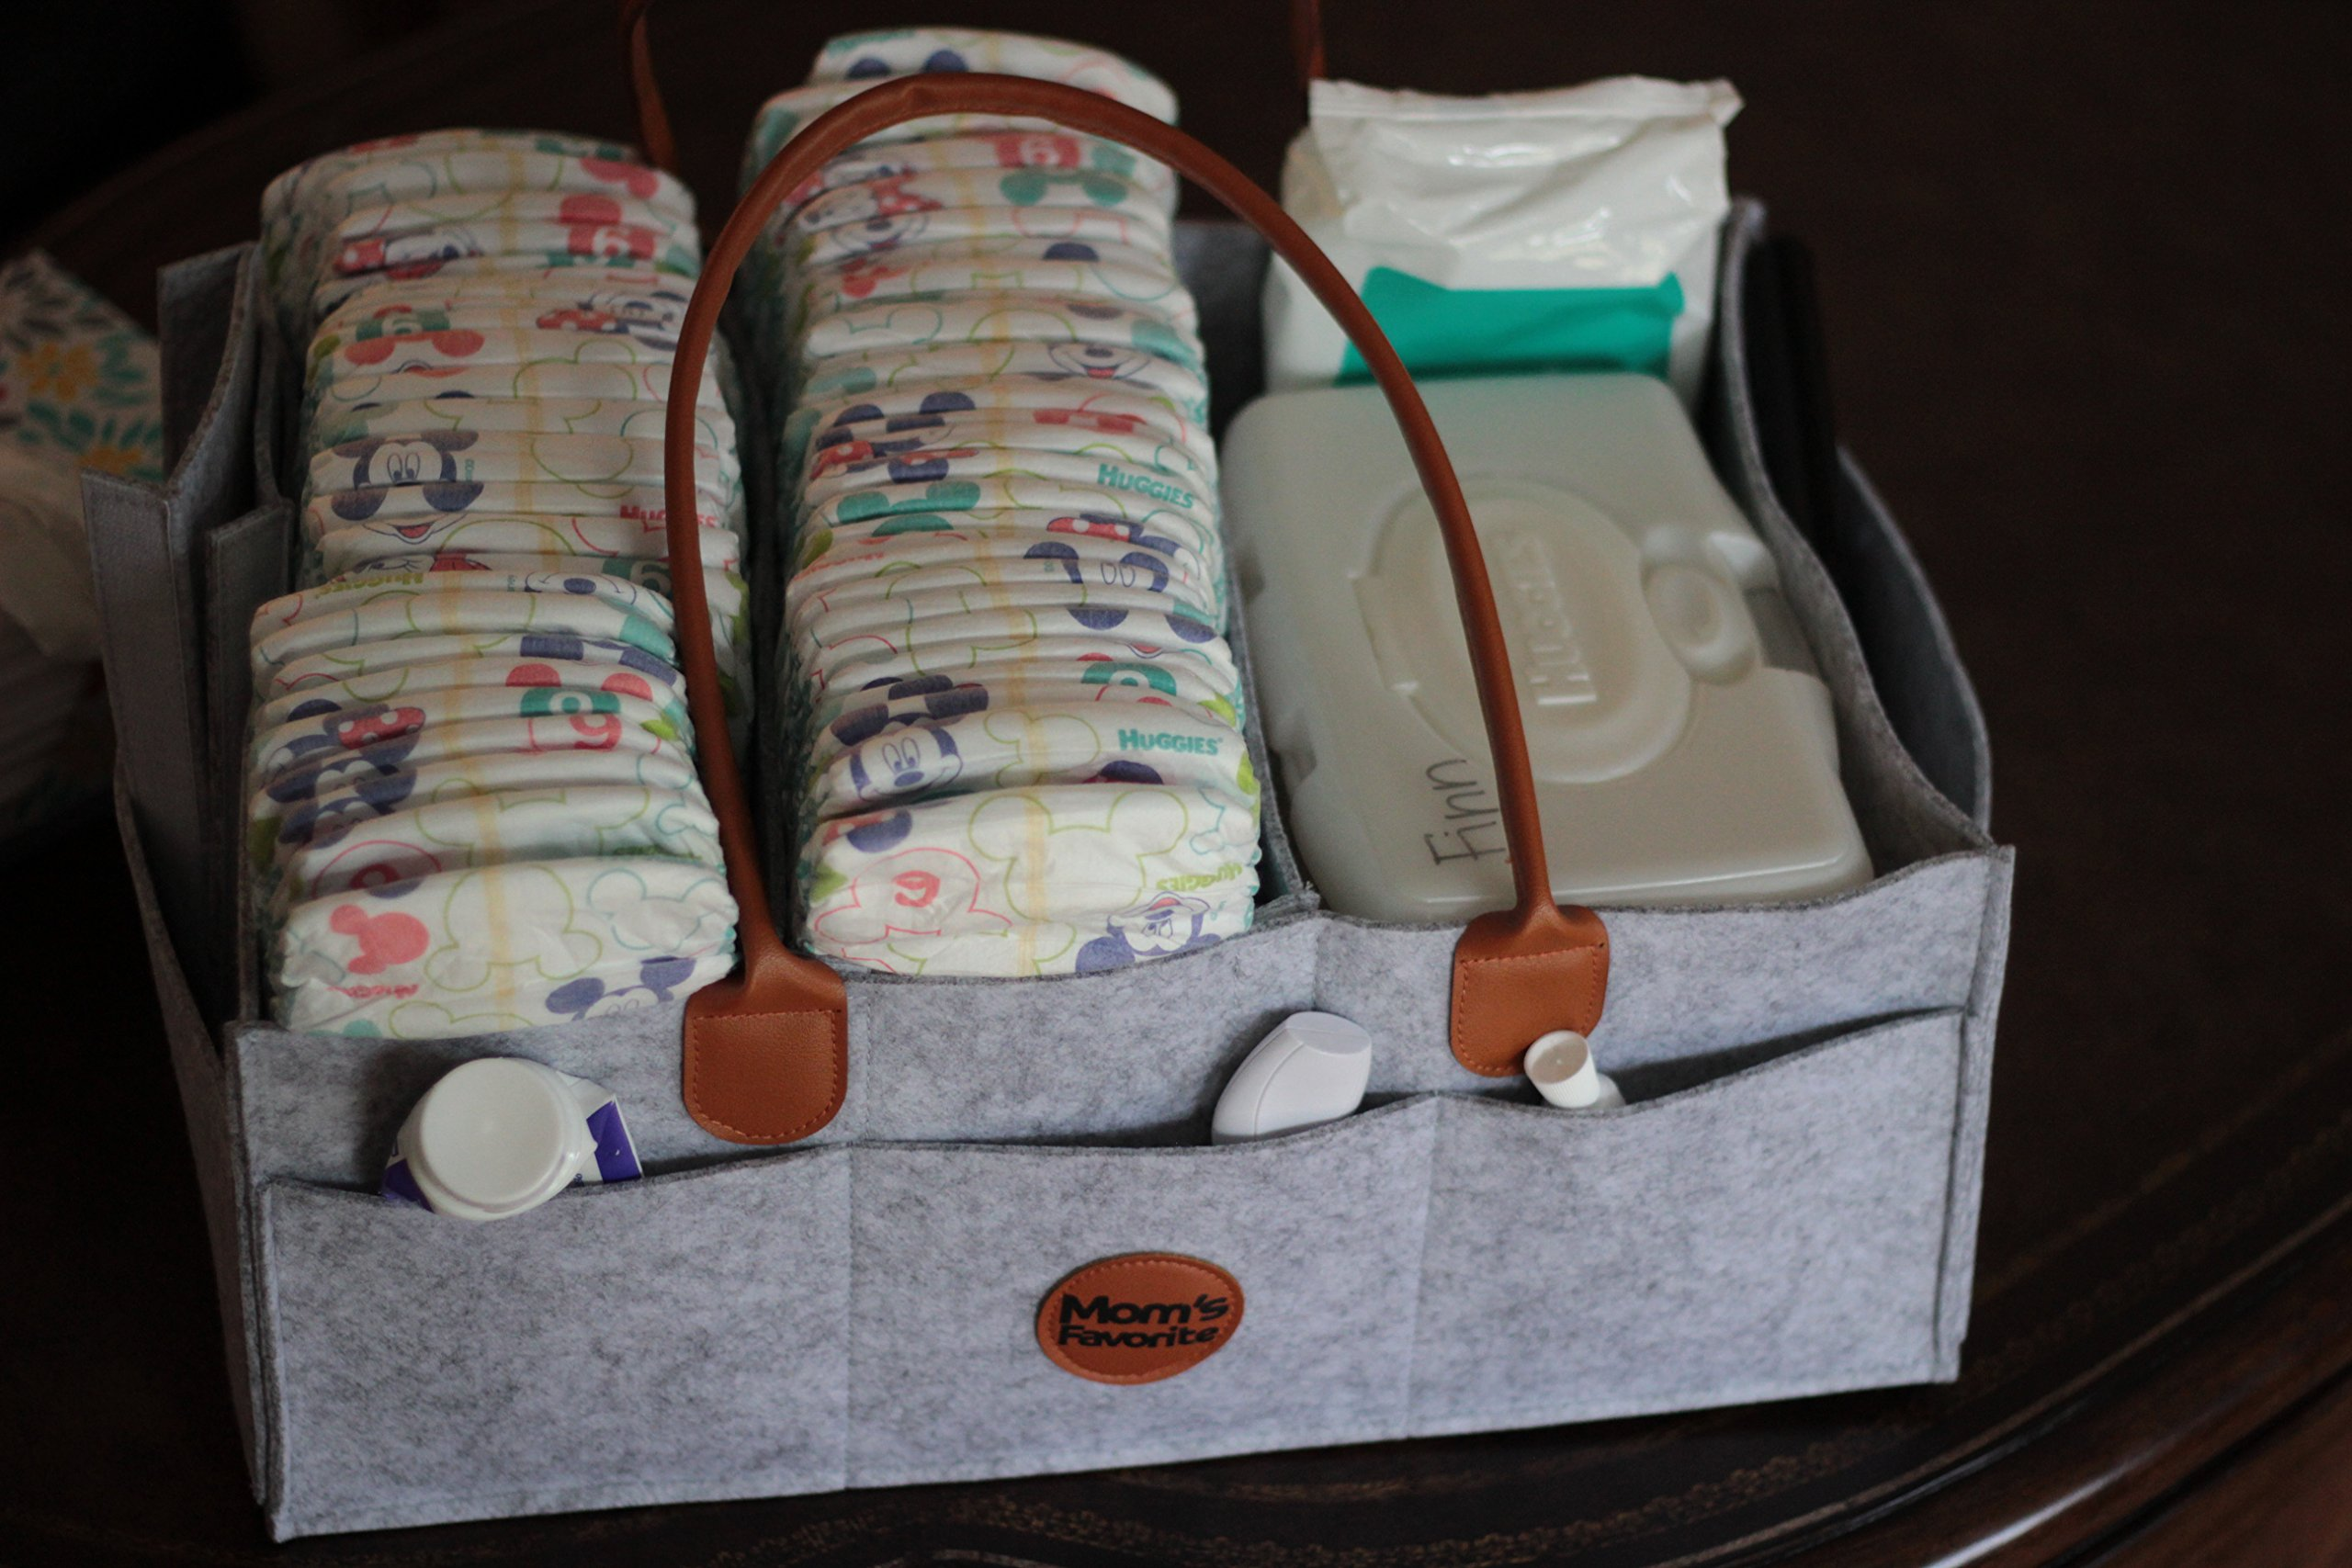 Mom's Favorite diaper caddy | Large baby nursery diaper organizer for diapers and baby wipes